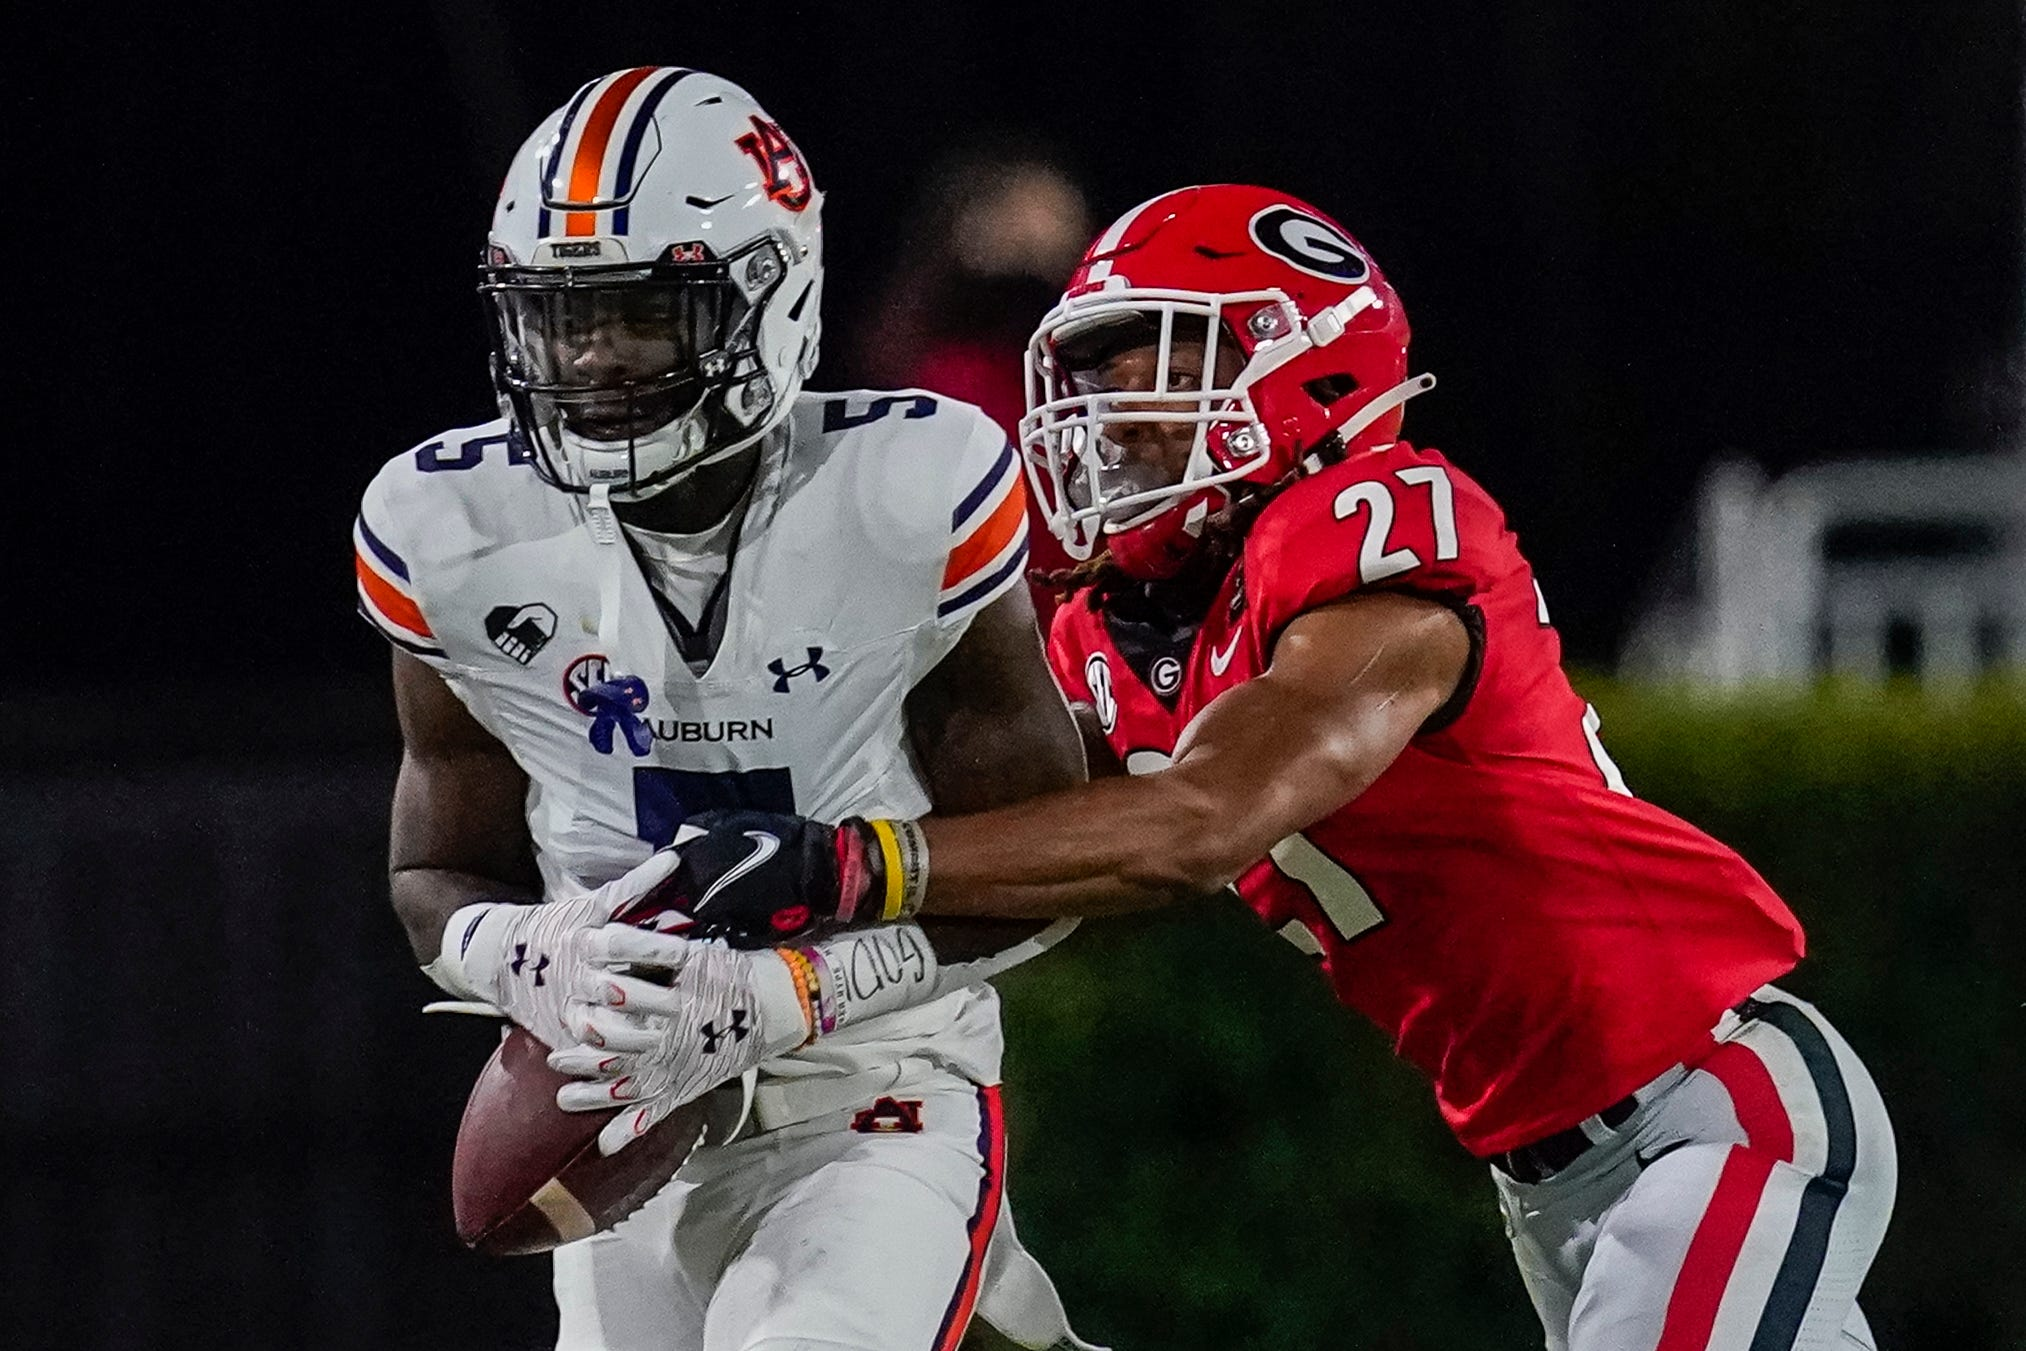 One realignment scenario could mean annual rivalries like Georgia-Auburn may be sacrificed to ensure fair and competitive balance among the 16-team SEC.